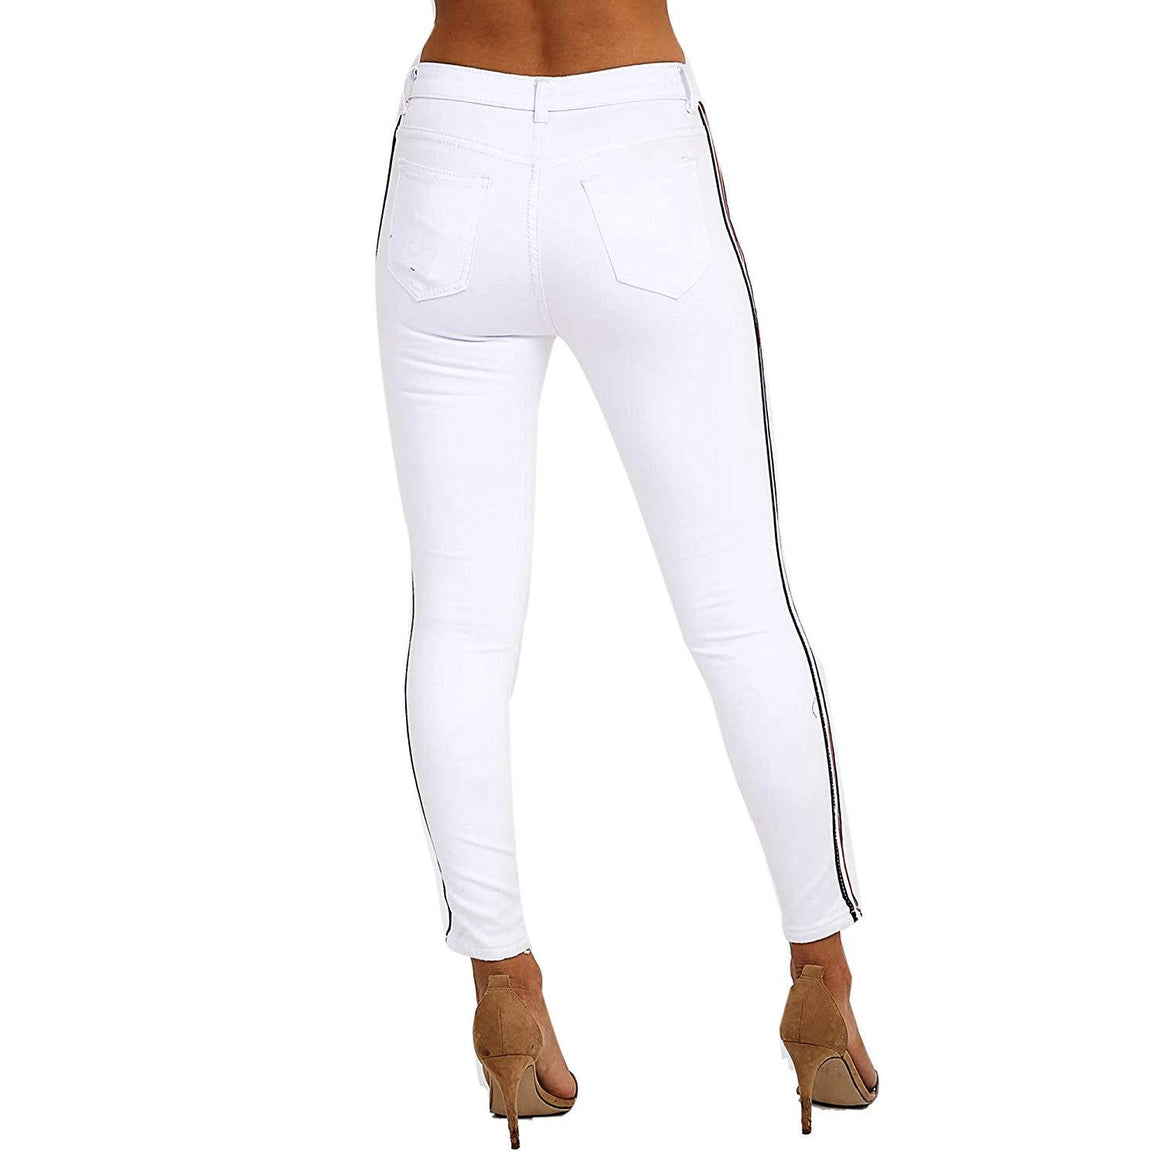 Womens Stretchy Mid Rise Super Skinny Fit White Jeans